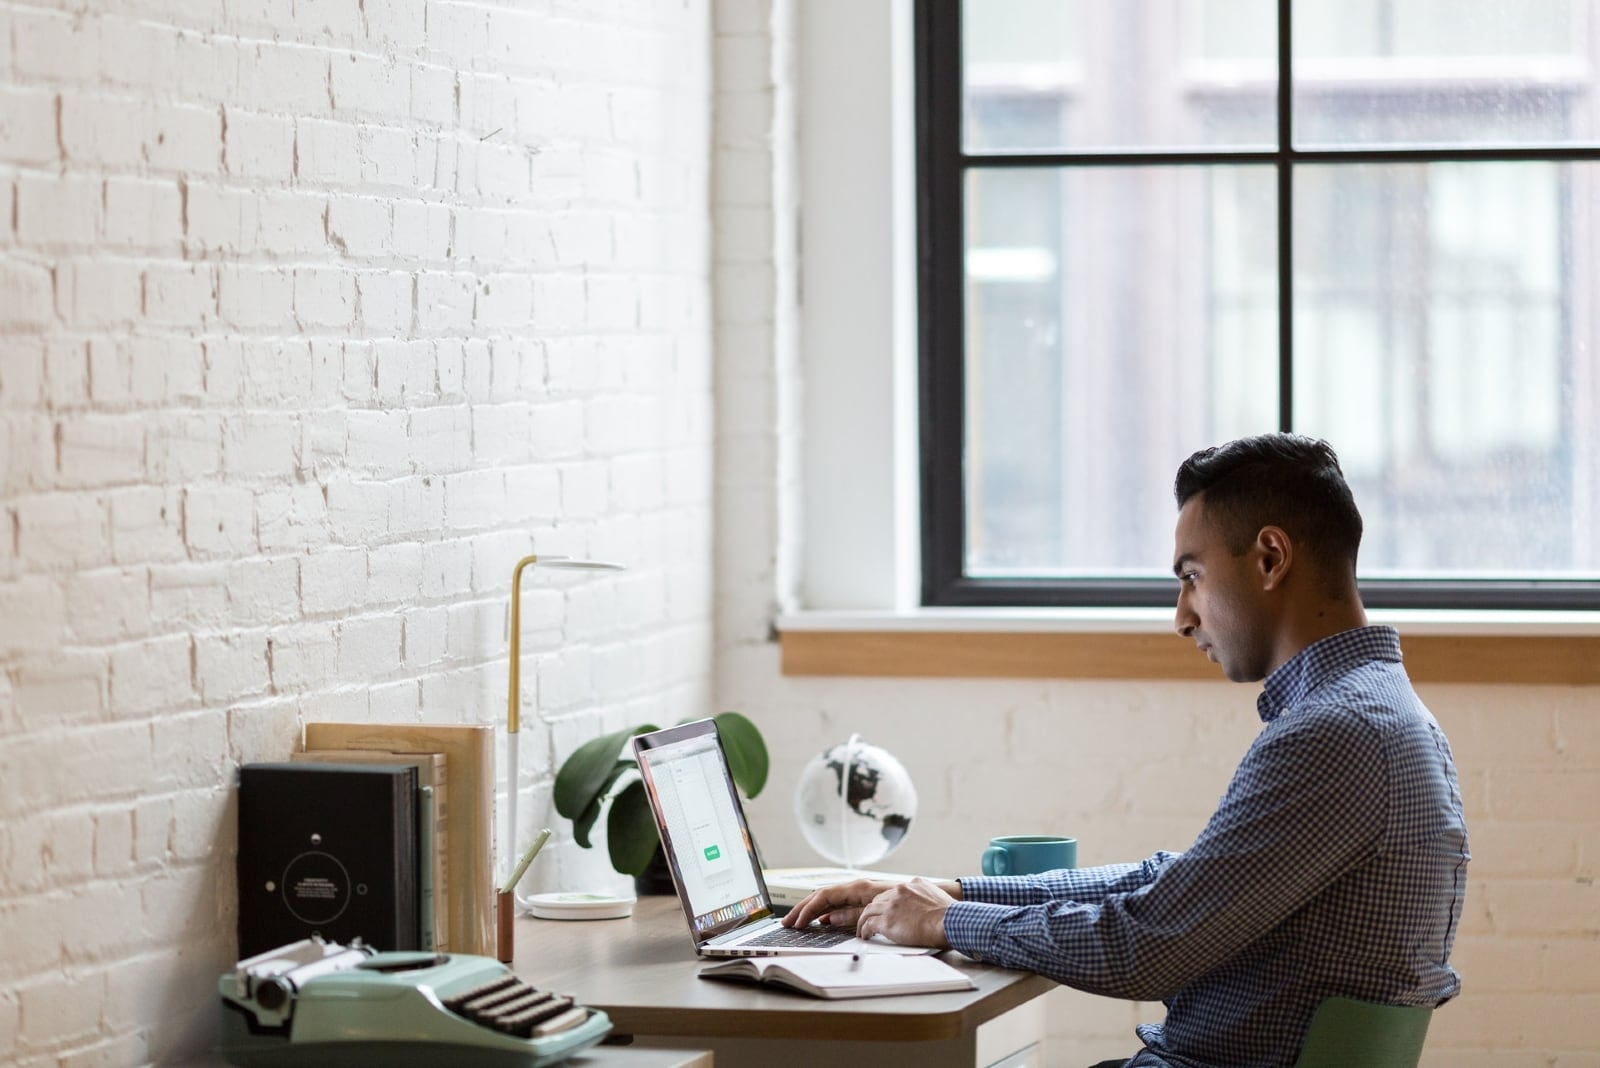 man using laptop while sitting in office